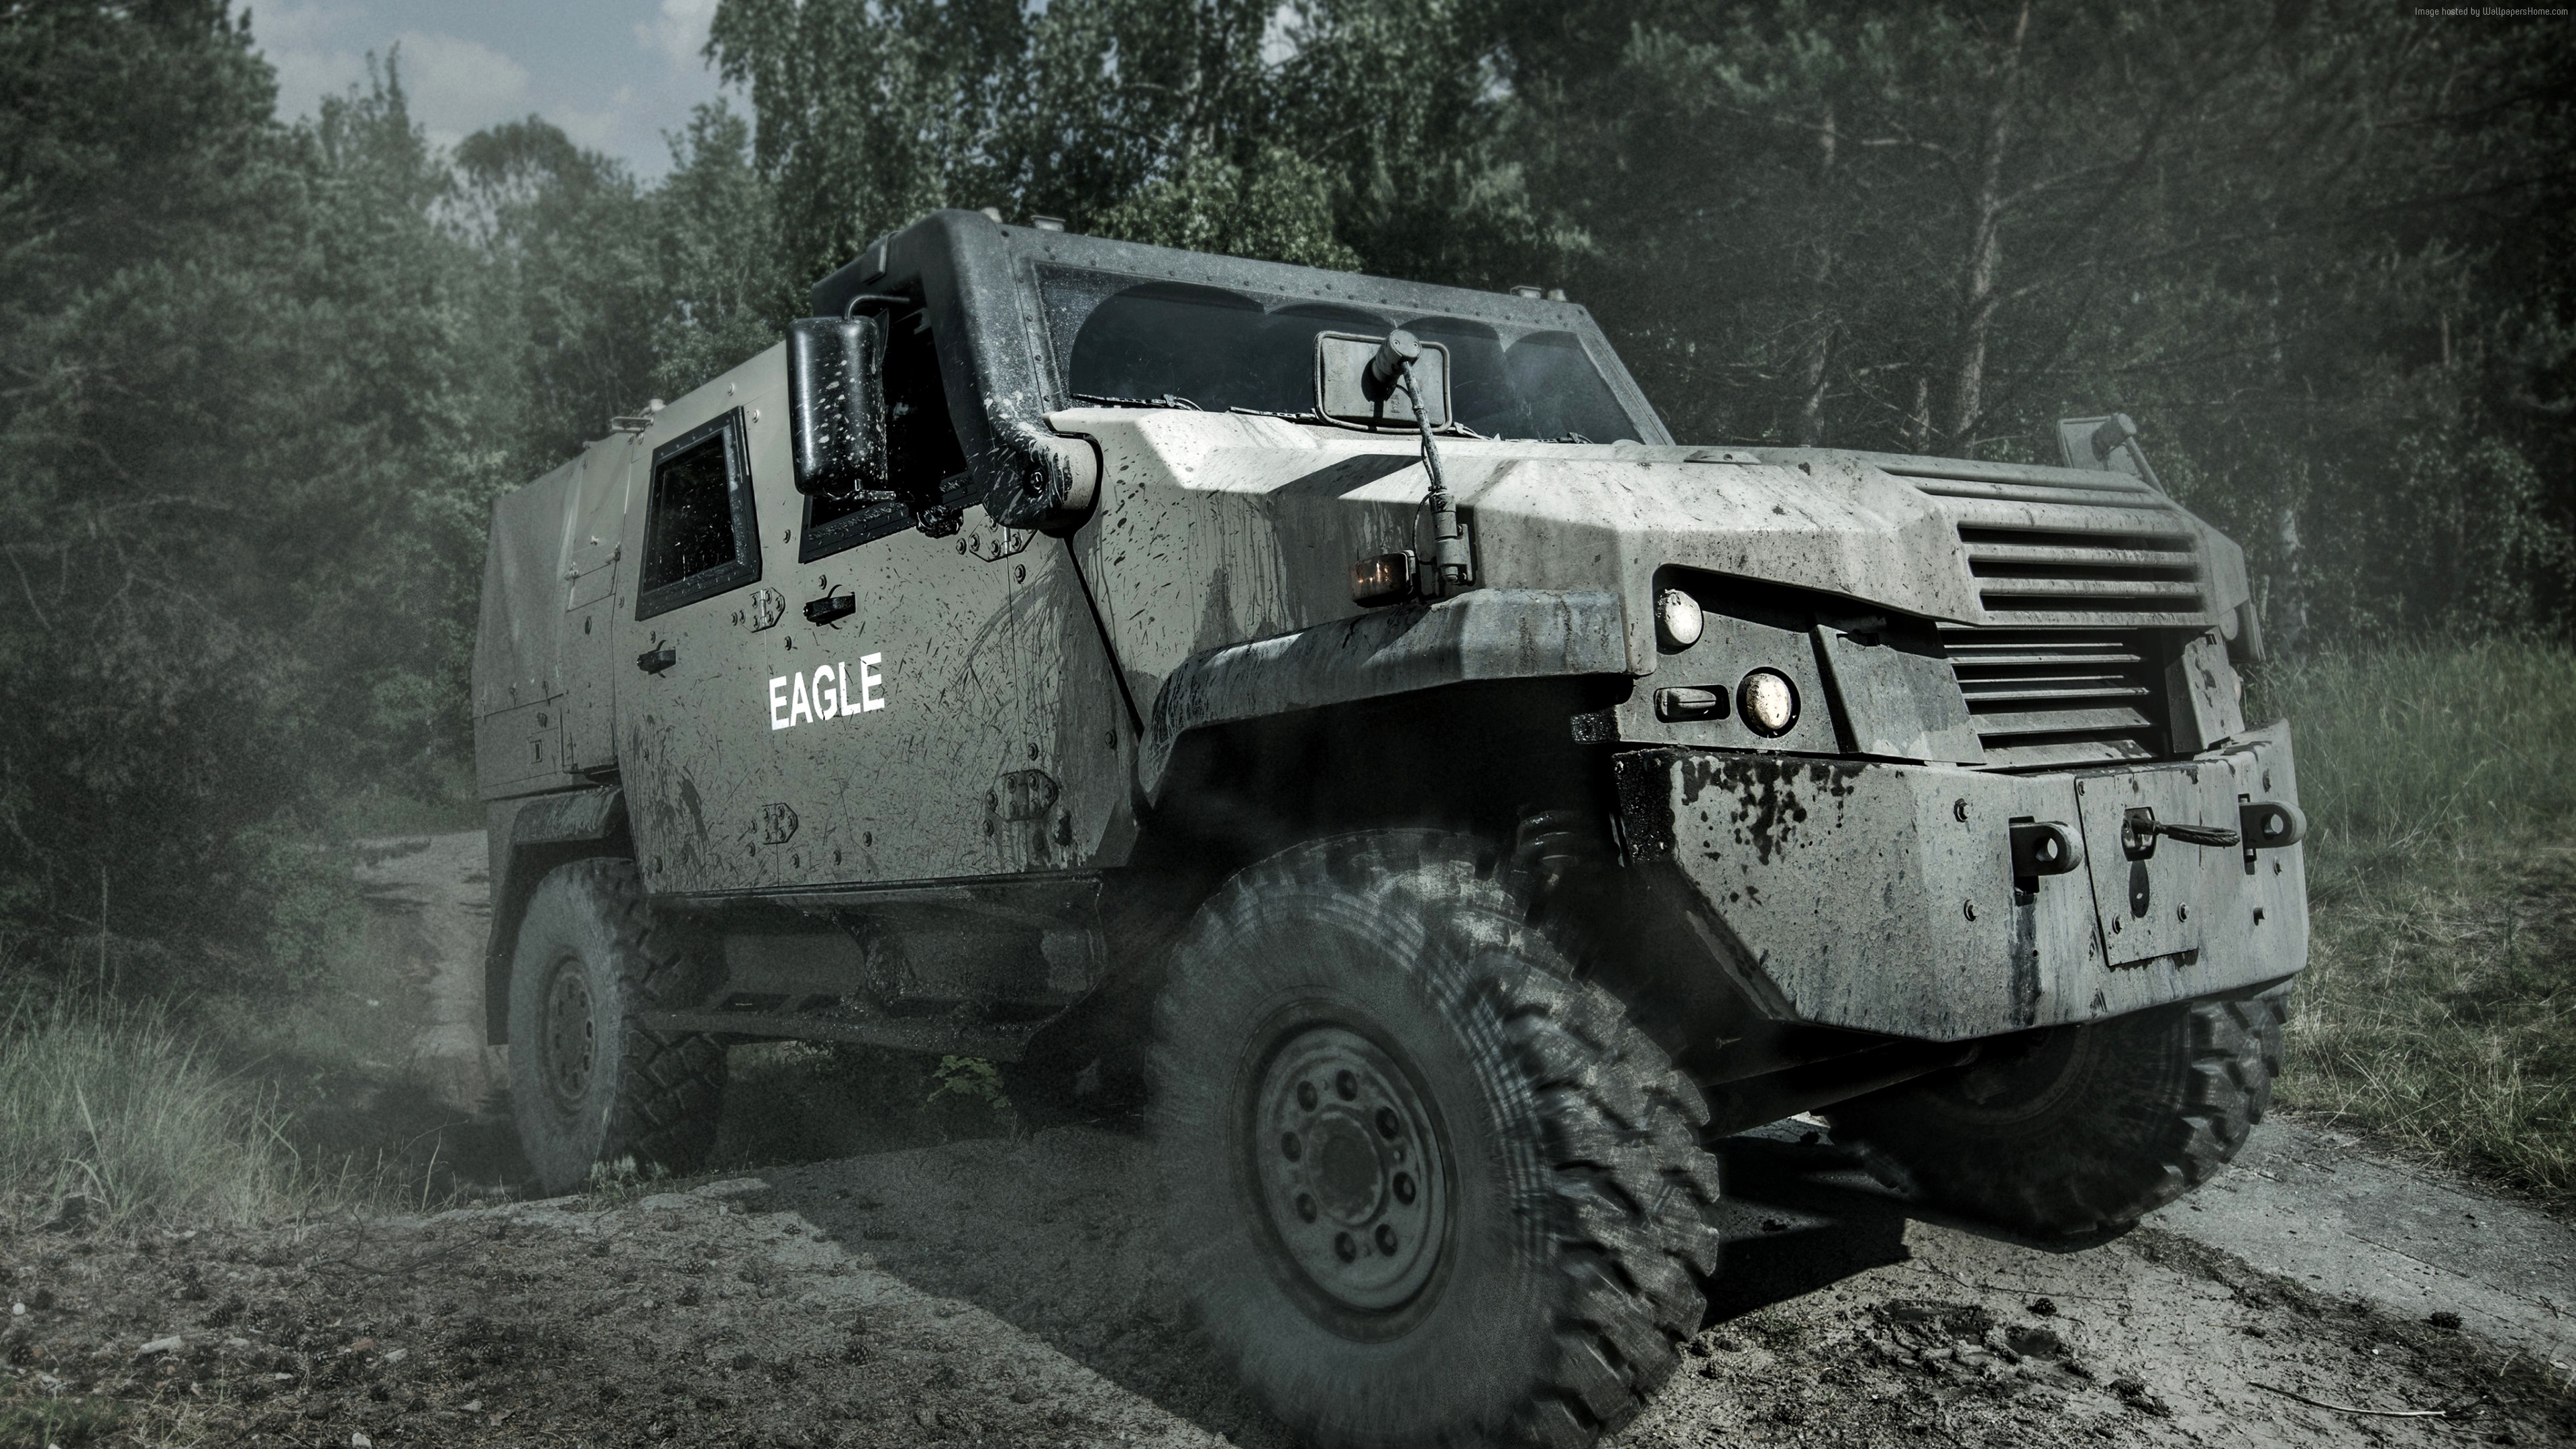 Wallpaper MOWAG Eagle, wheeled armored vehicle, Swiss Army, Military